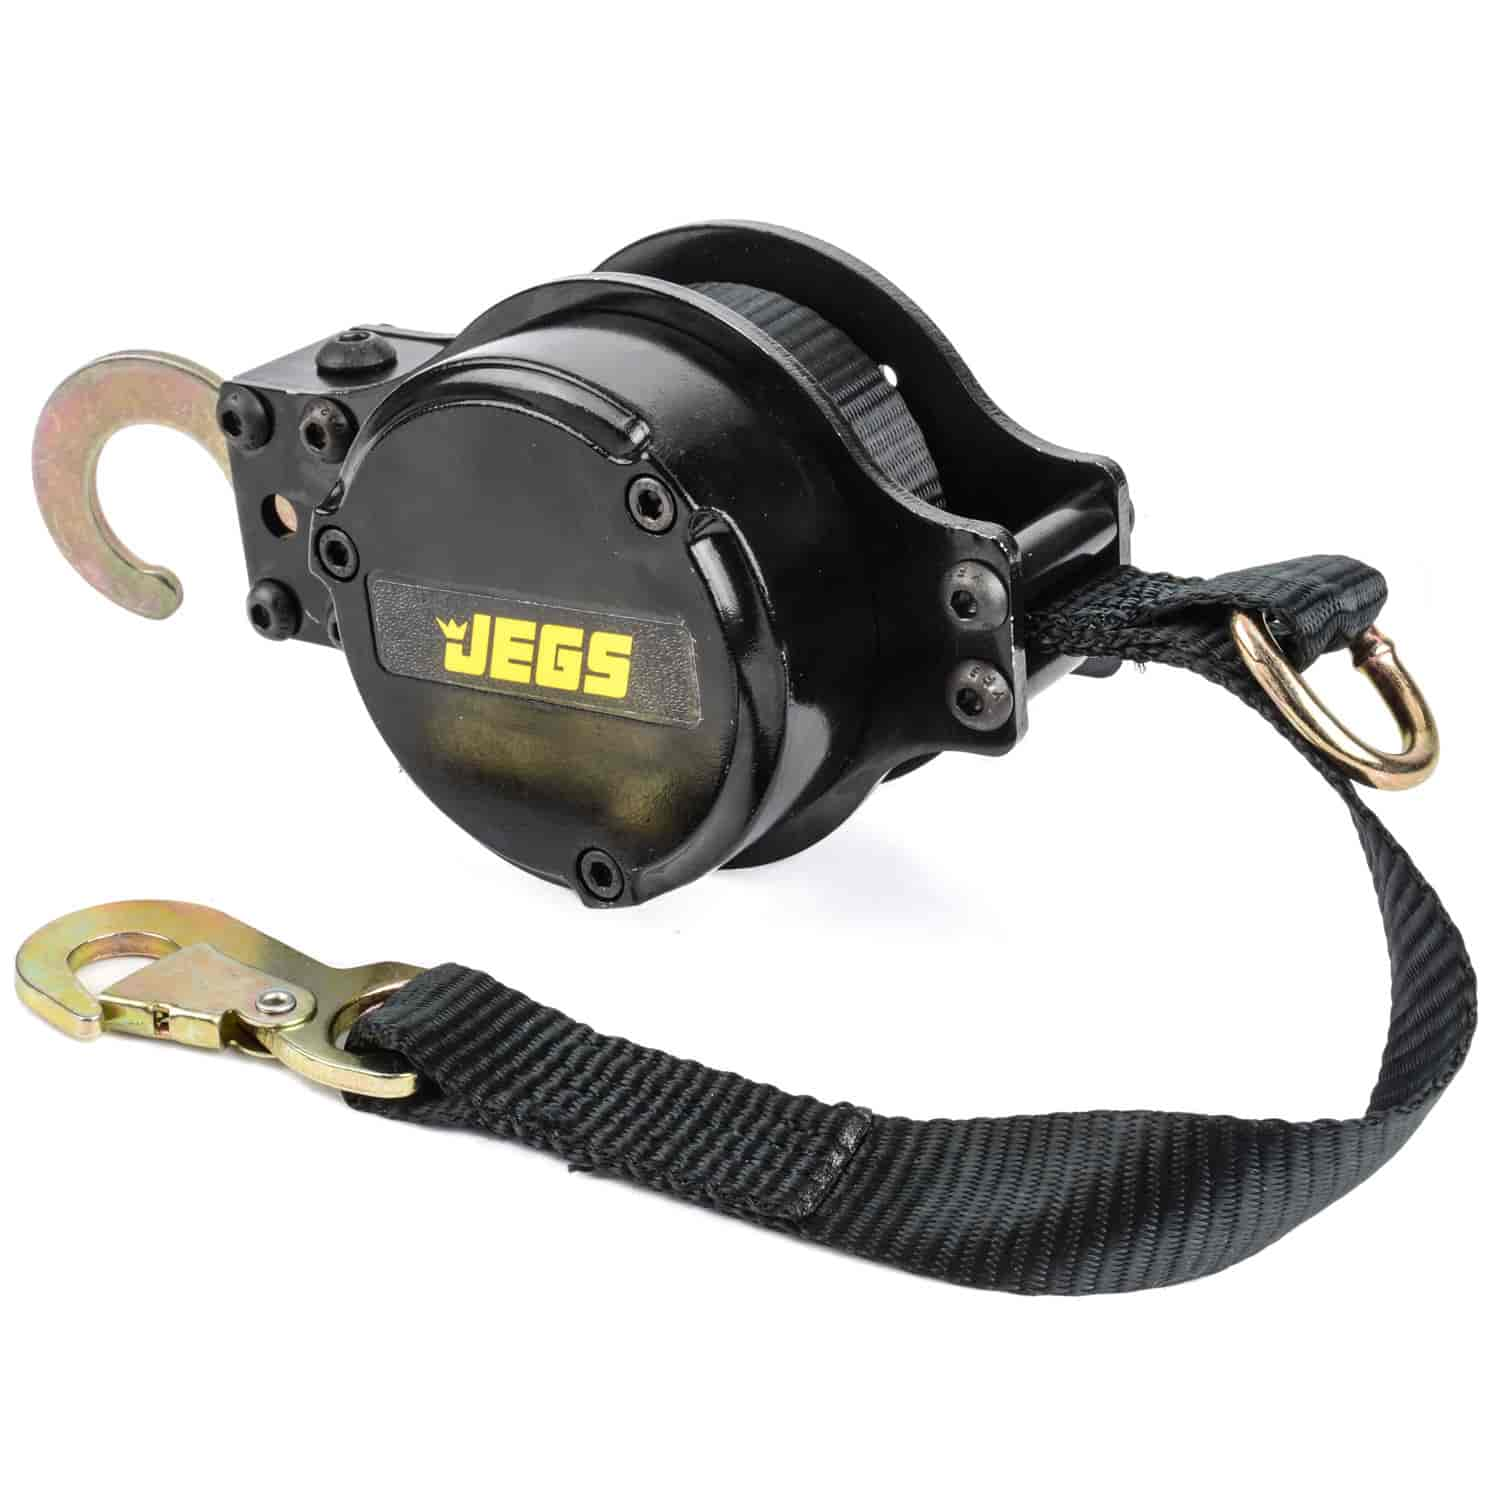 JEGS Performance Products 80145 - JEGS Retractable Tow Straps